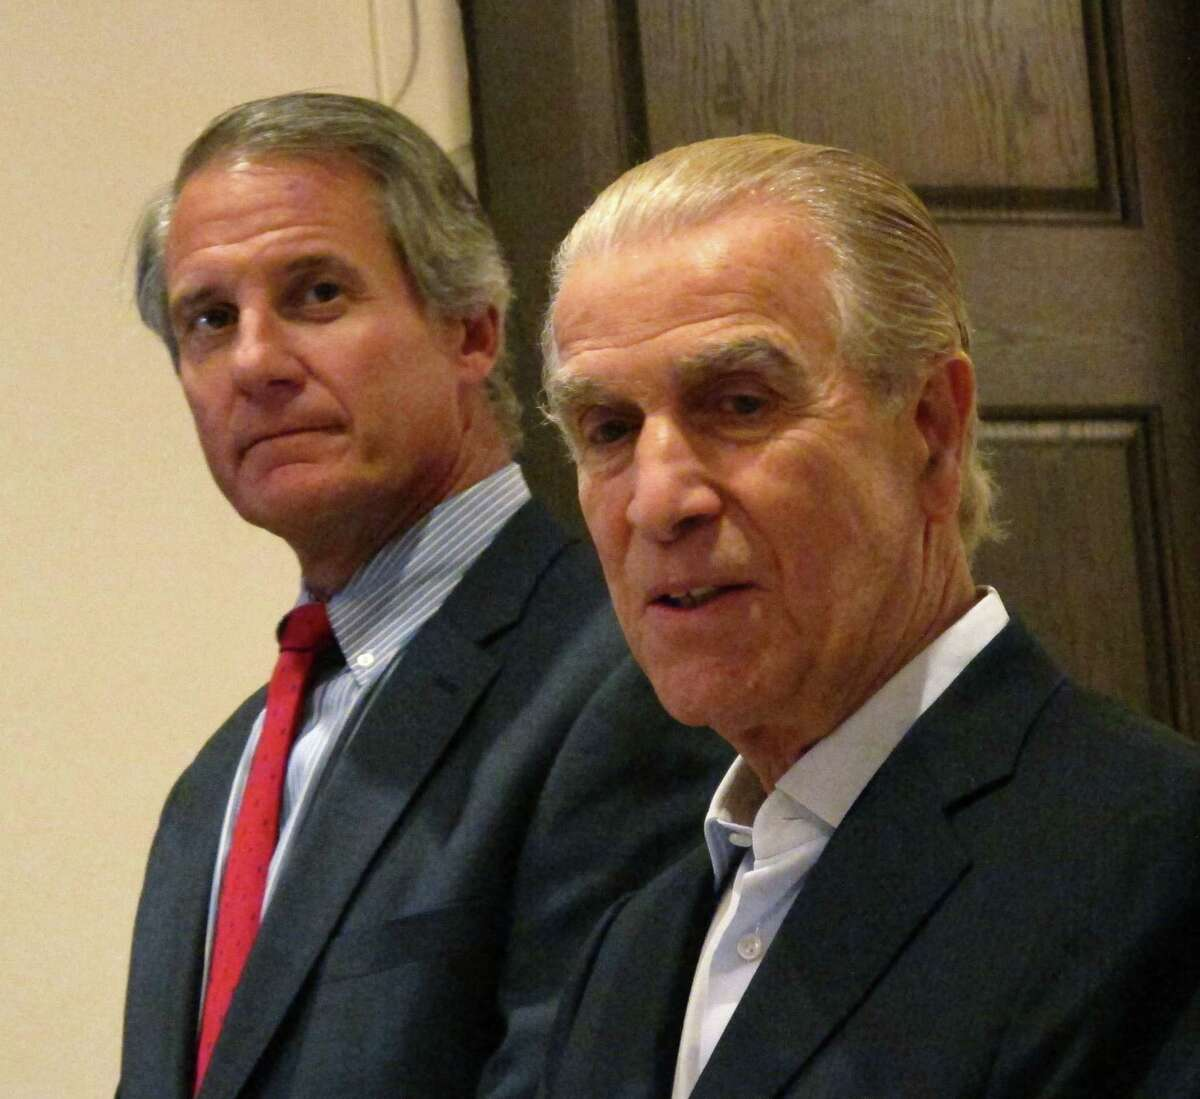 This Aug. 26, 2015, photo shows Mitchell Etess, right, CEO of Mohegan Gaming Advisors, and Morris Bailey, left, owner of Resorts Casino Hotel in Atlantic City, N.J. On Wednesday Oct. 14, 2015, the New Jersey Casino Control Commission approved a new management agreement in which the Mohegans can invest in Resorts' Internet gambling operations, but not own any more than 10 percent of the casino itself.